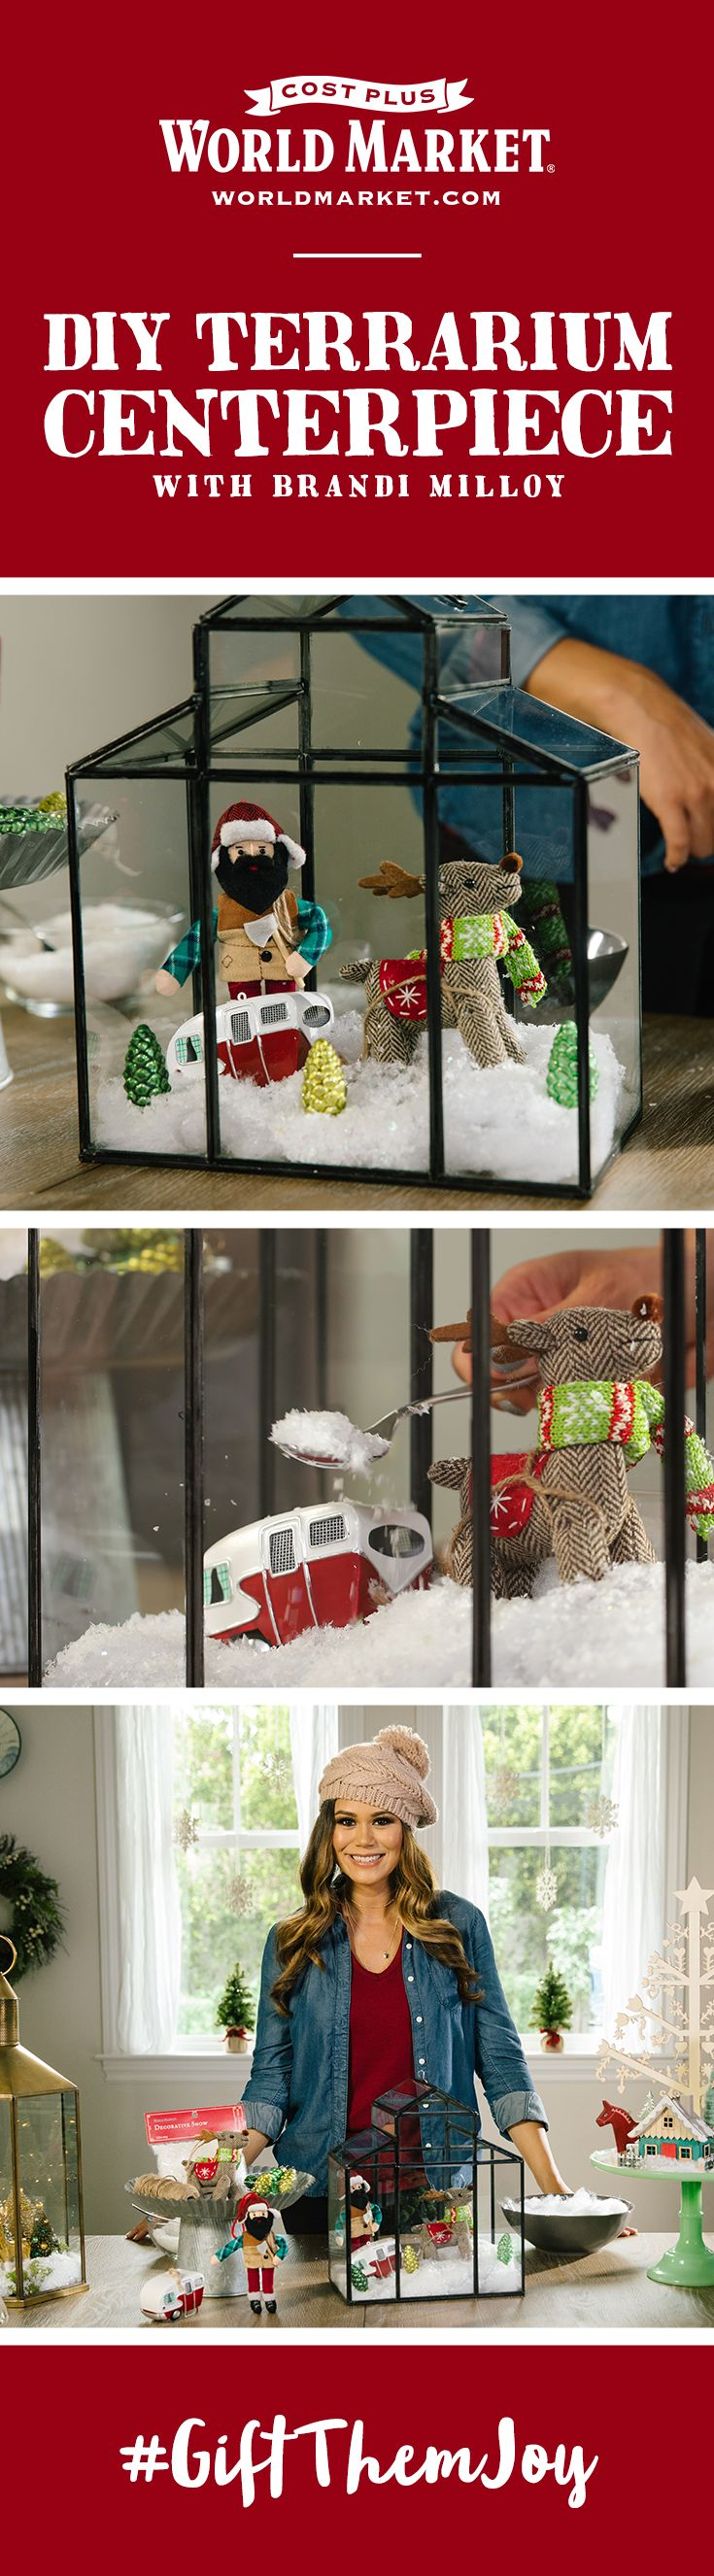 Take your holiday decorating up a notch this season with Brandi Milloy's inspiring ideas for festive DIY terrarium centerpieces. Perfect for holiday tablescapes, entryway decor, the mantel, or just about anywhere else you could imagine. Visit the Cost Plus World Market blog to see the full video, along with tons of other ways to #GiftThemJoy.